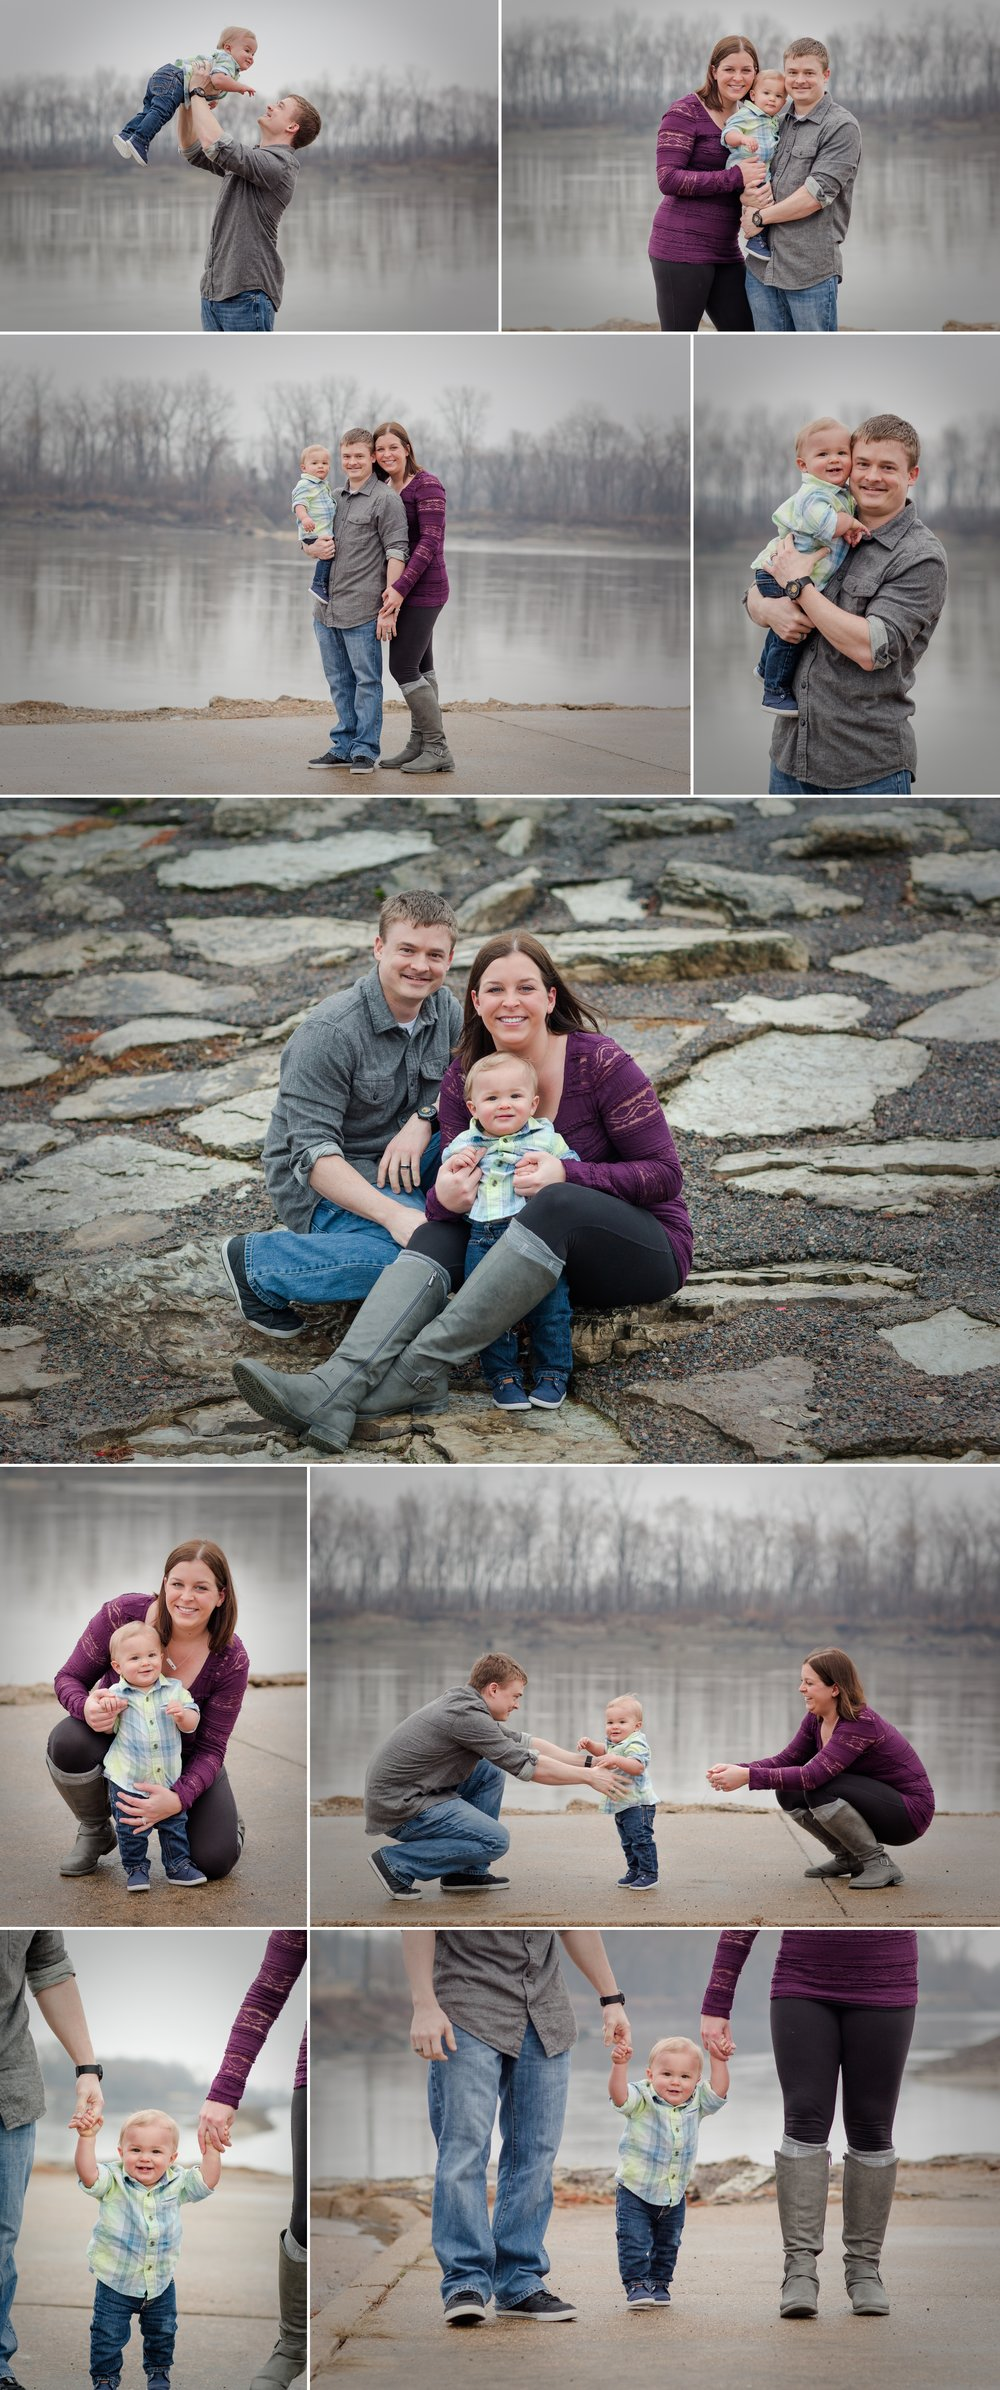 missouri_river_photography_poses_st_louis_family_photographer_washington_one_year_old_location_scenic_ideas